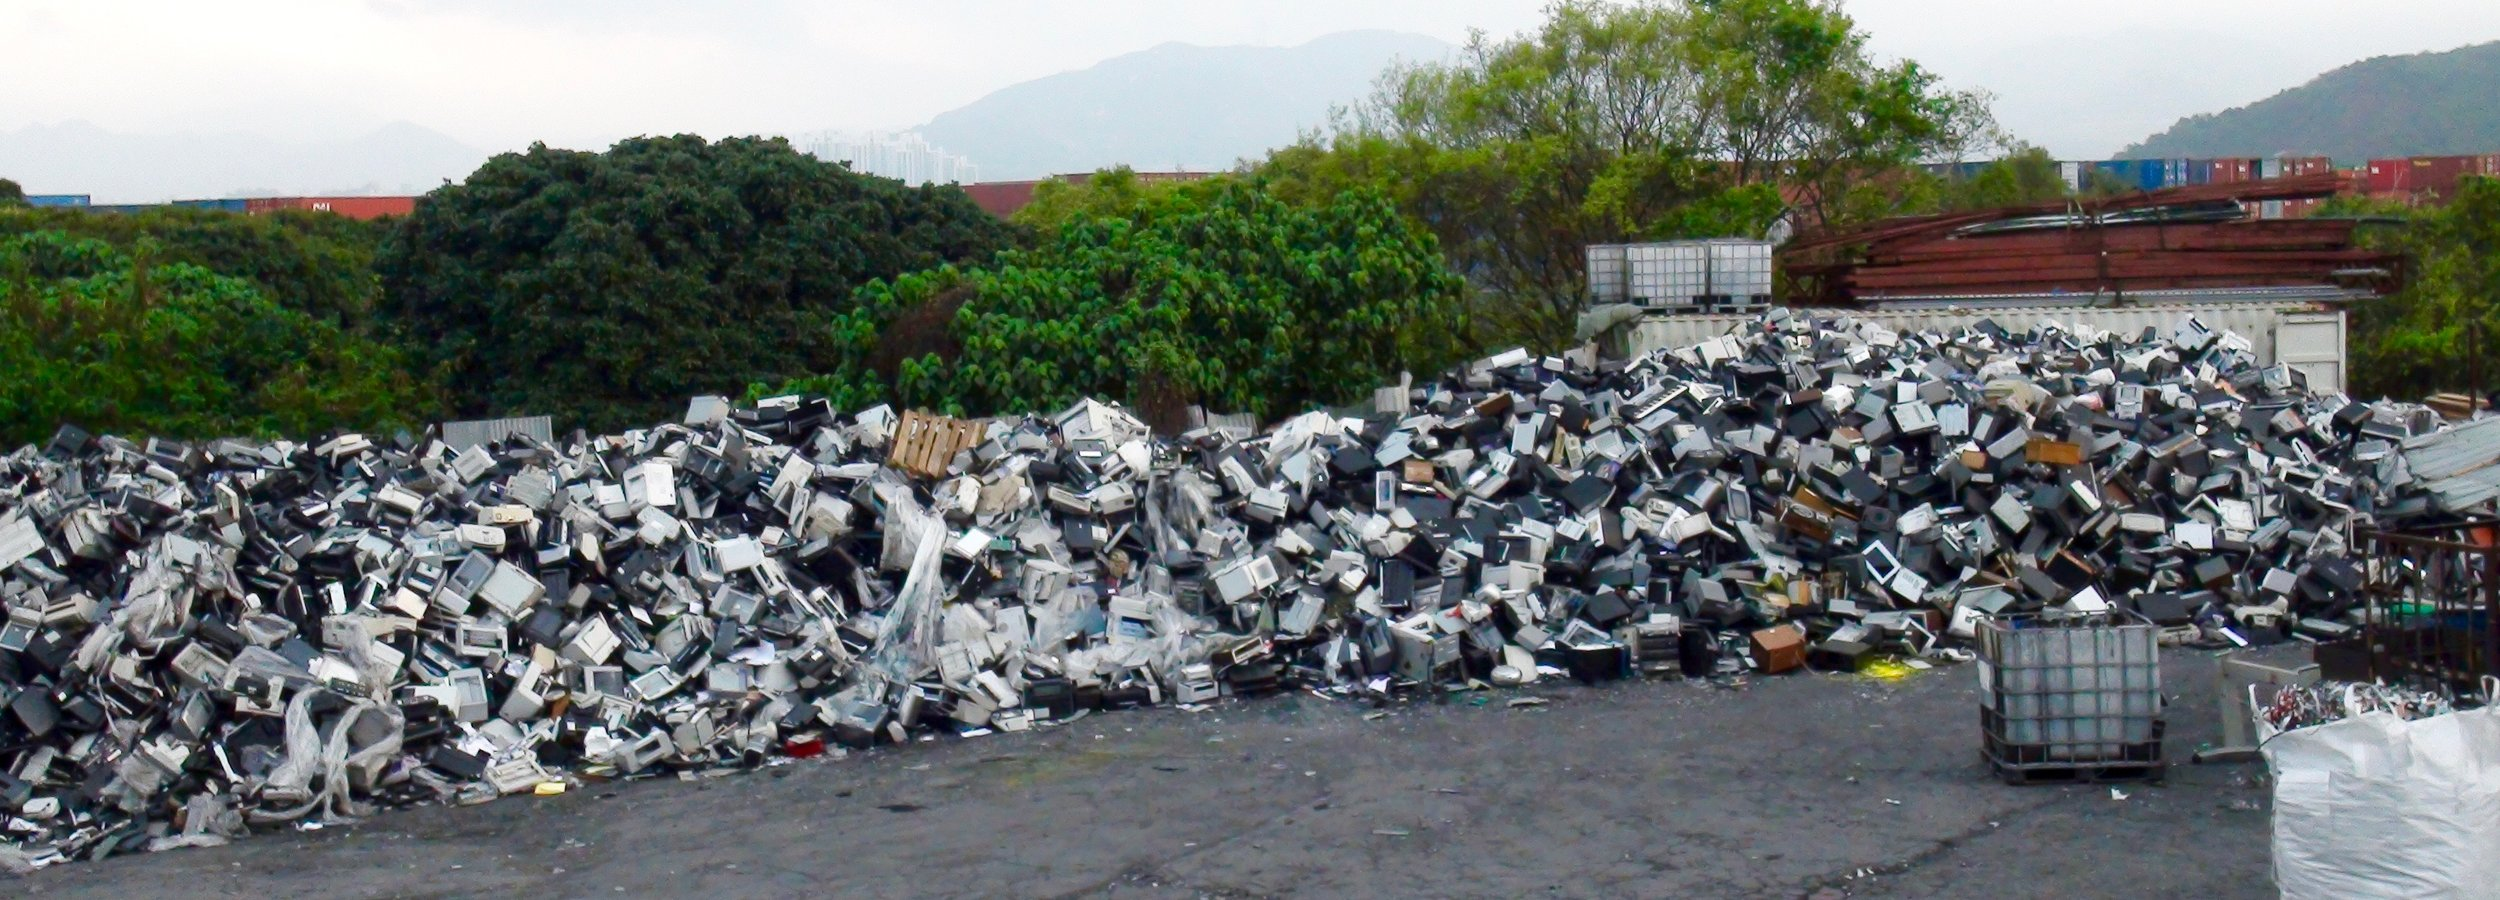 """American e-waste exported by so-called """"electronics recyclers"""" dumped in hidden Hong Kong e-waste junkyard discovered by BAN GPS trackers. This trade is criminal traffic and will be illegal under the Ban Amendment which has been ratified by China. Copyright BAN, March 2016."""